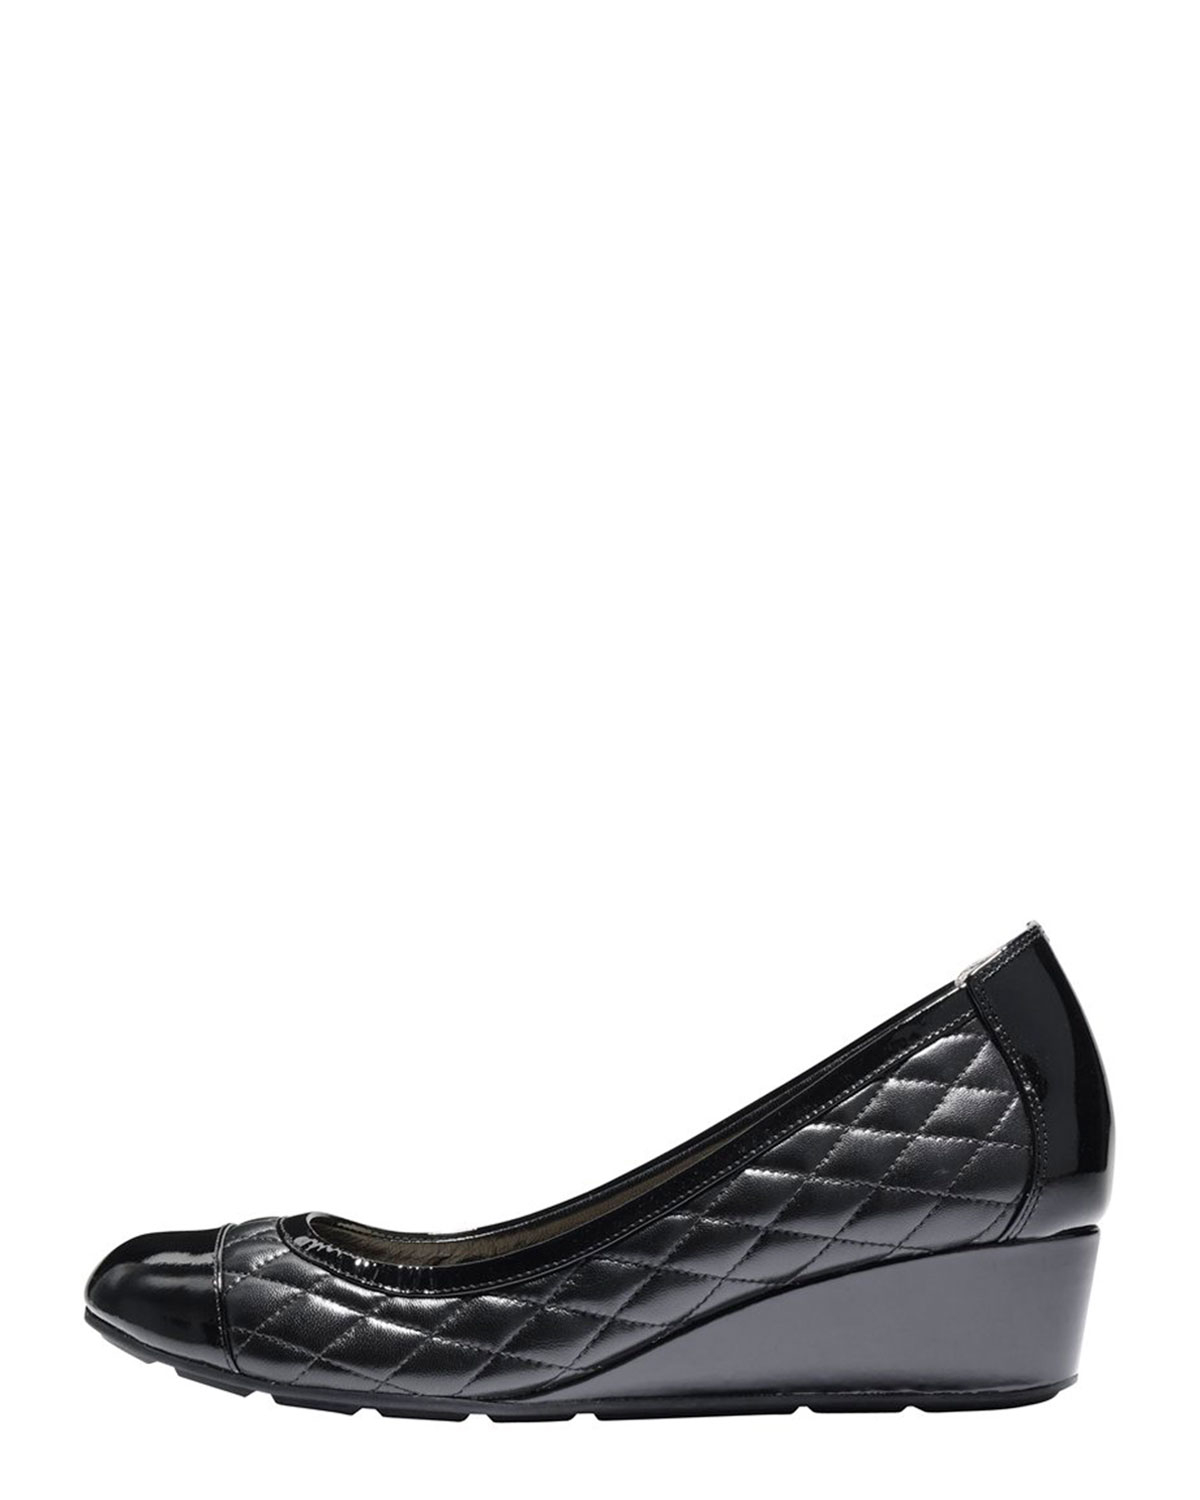 1d0e99ef523 Lyst - Cole Haan Tali Quilted Wedge Pump in Black